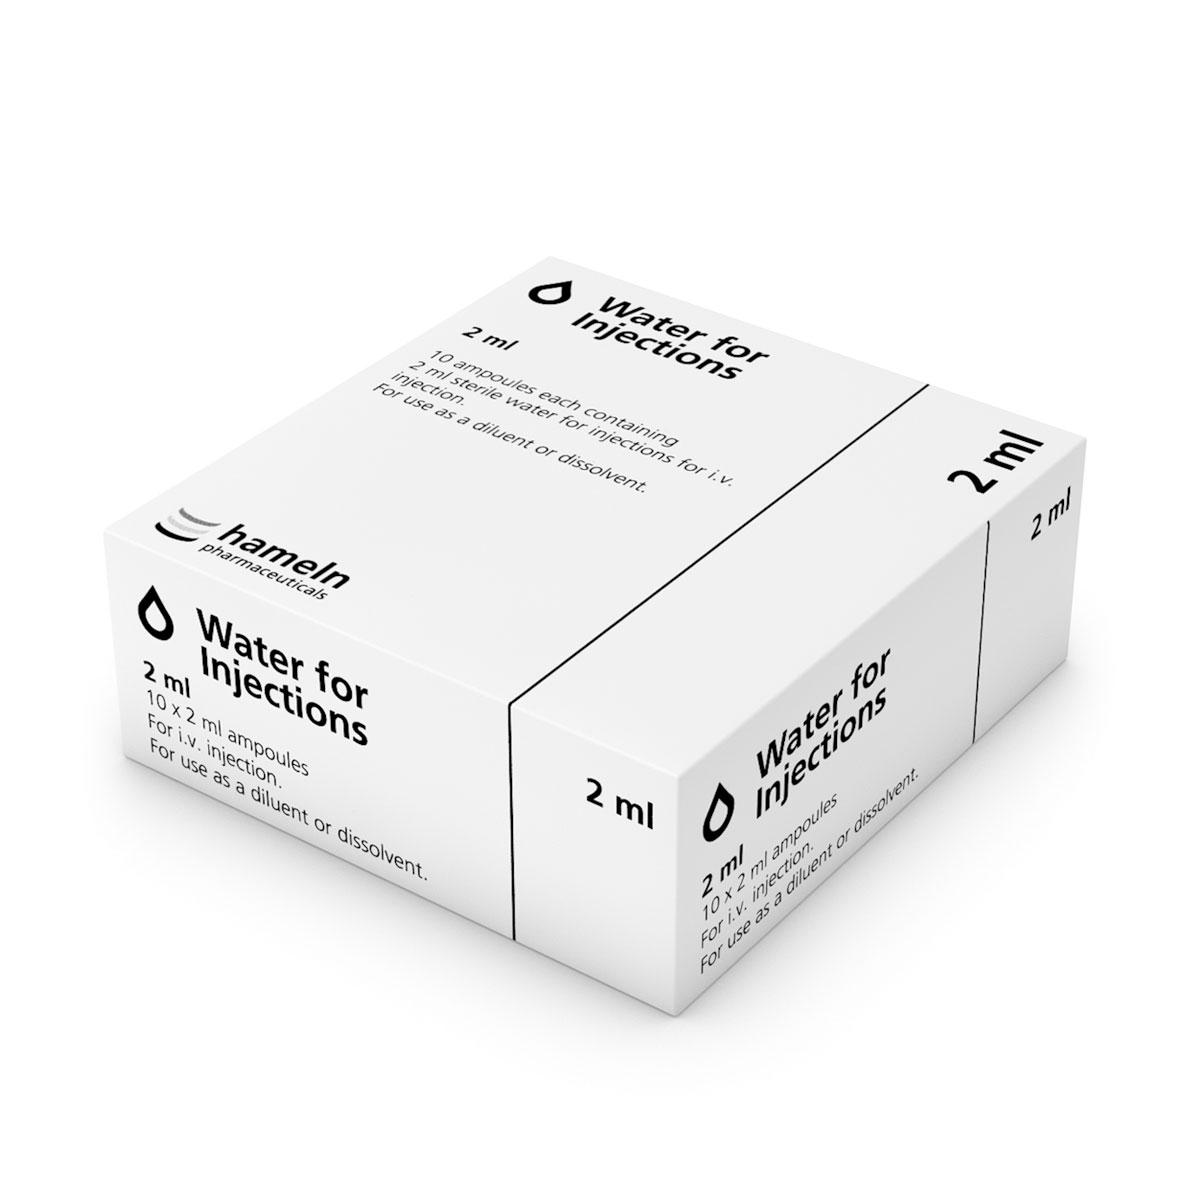 2ml Water for Injections ( POM ) Box